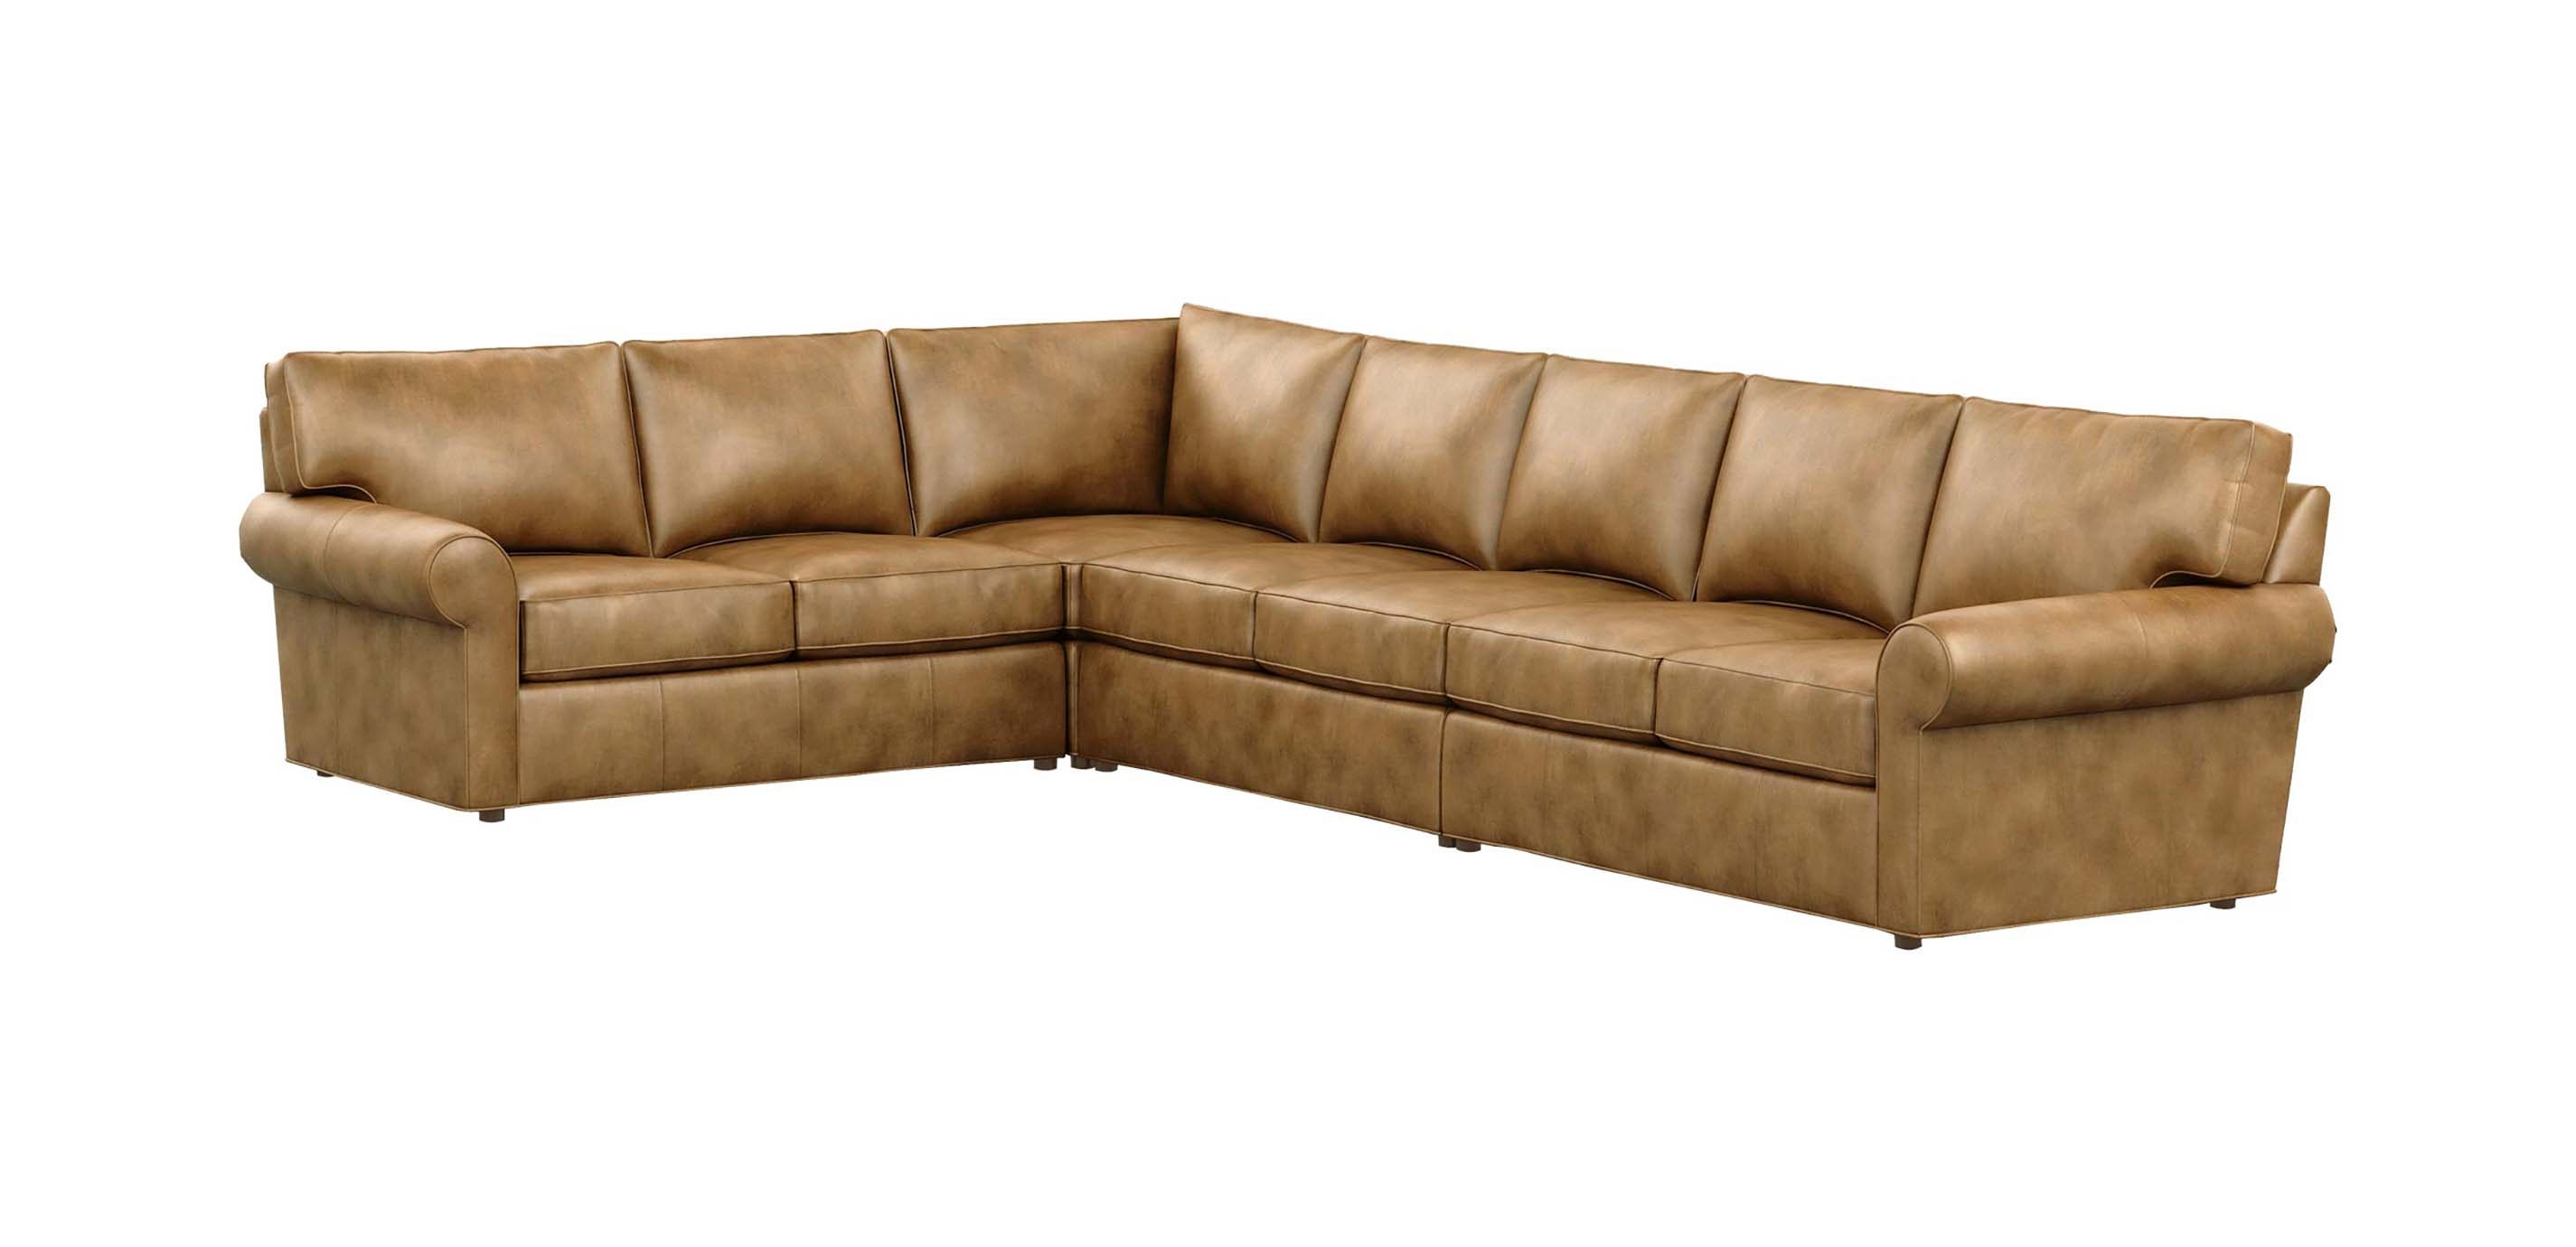 Retreat Leather Large Roll-Arm Sectional | Ethan Allen